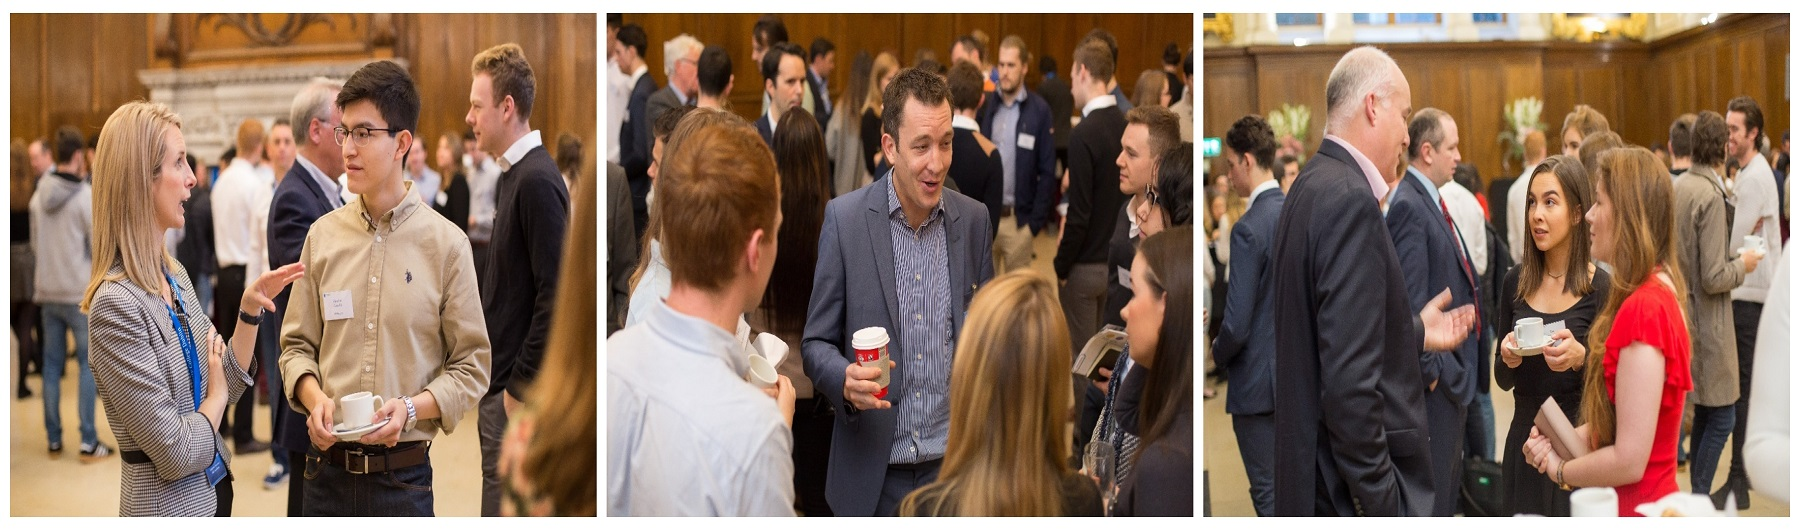 Alumni-to-Student Mentoring, Foresight Business Breakfast                                                                     (Sponsored by the TBA)